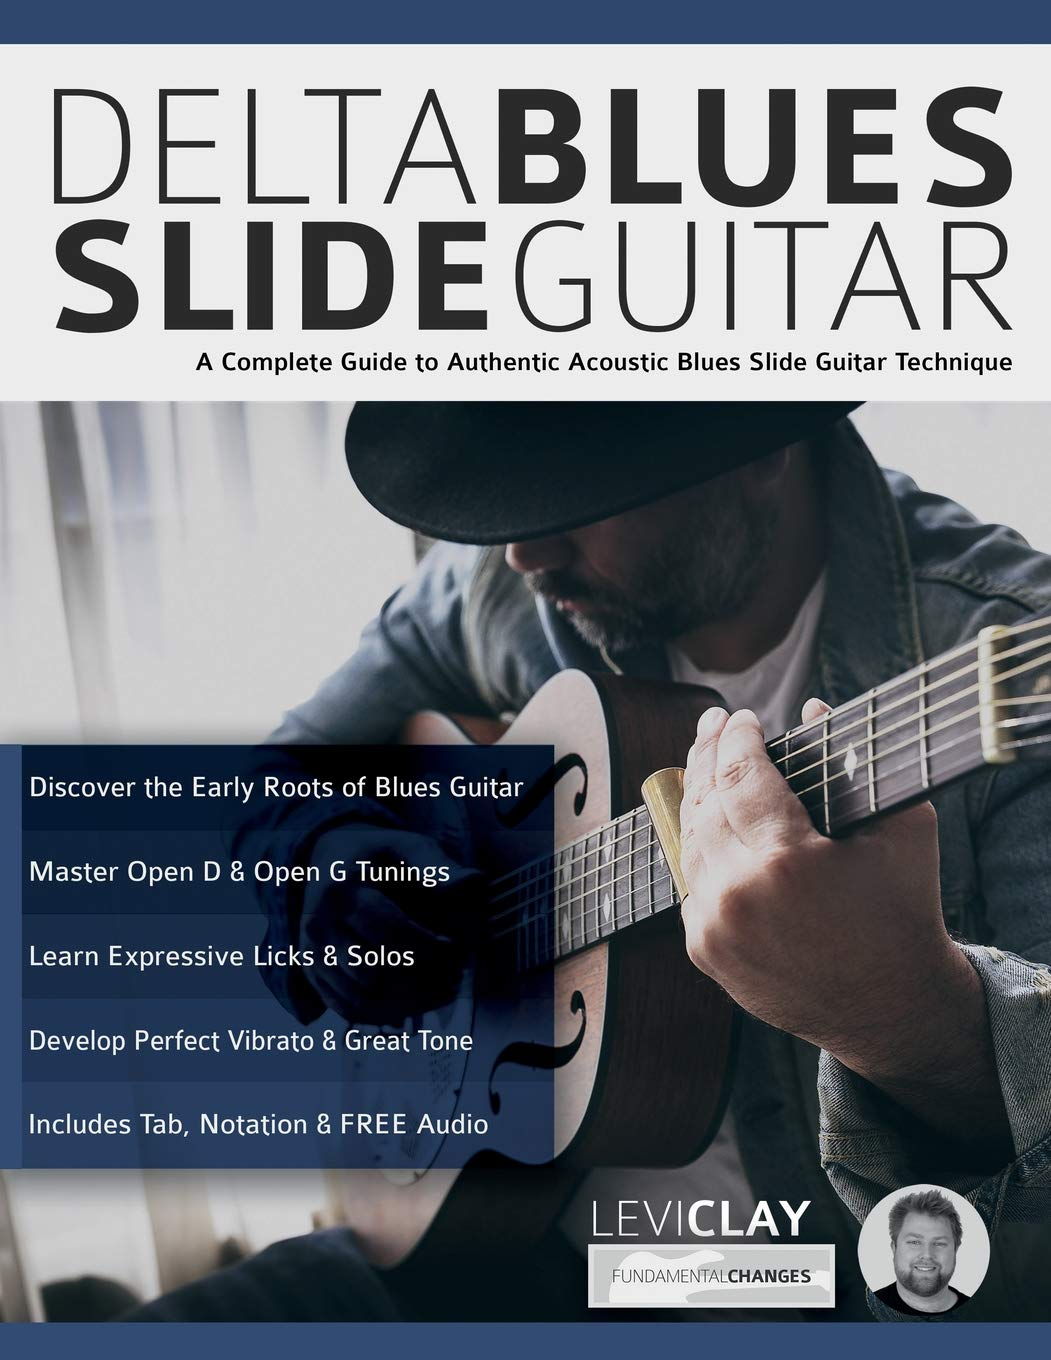 Delta Blues Slide Guitar: A Complete Guide to Authentic